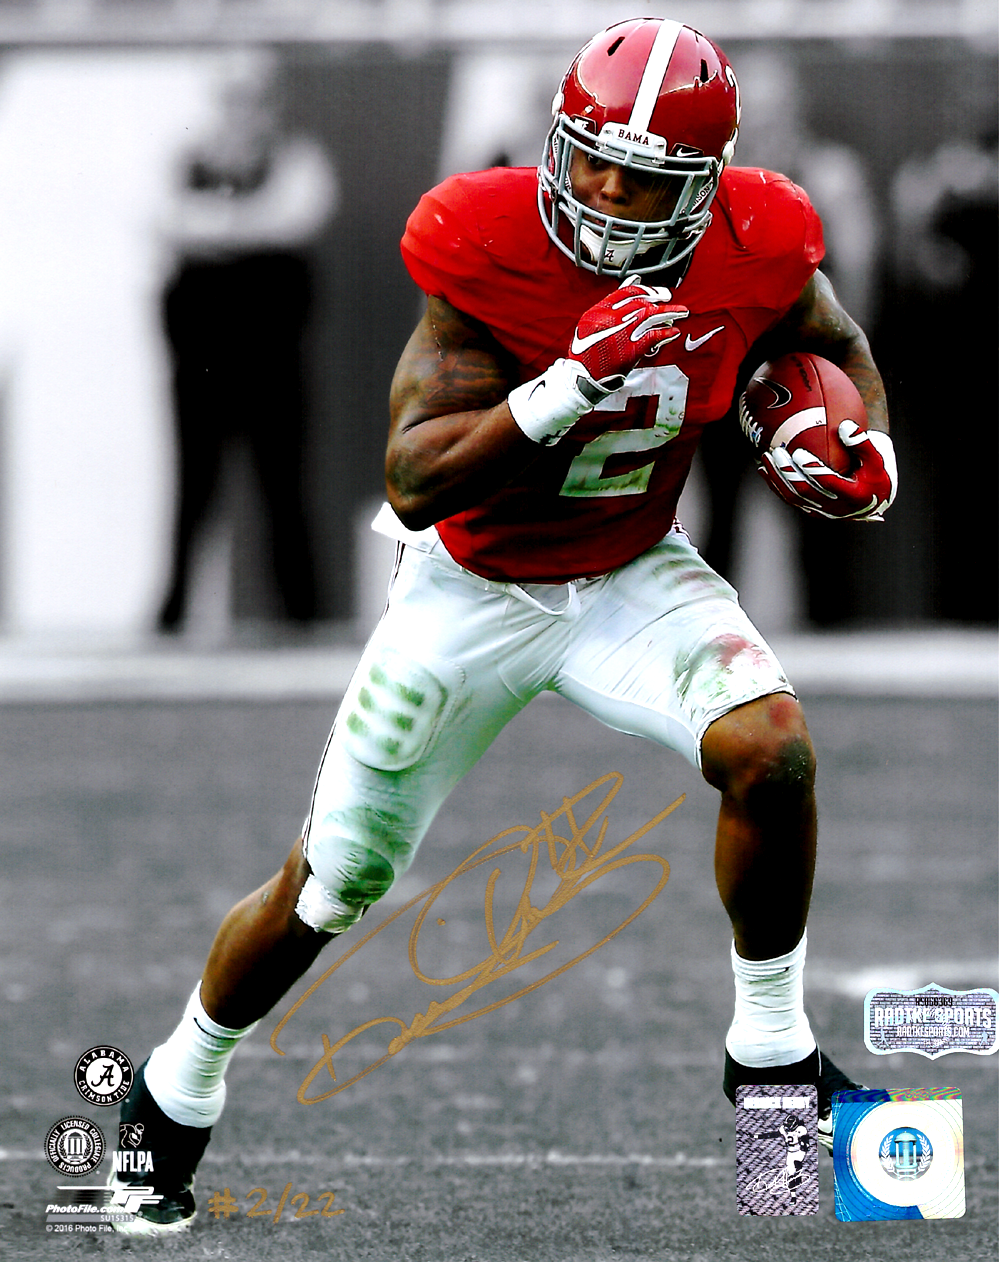 finest selection 81e56 ee6f7 Derrick Henry Signed Alabama Crimson Tide Spotlight 8x10 Photo - Red Jersey  - Limited Edition 2 Of 22